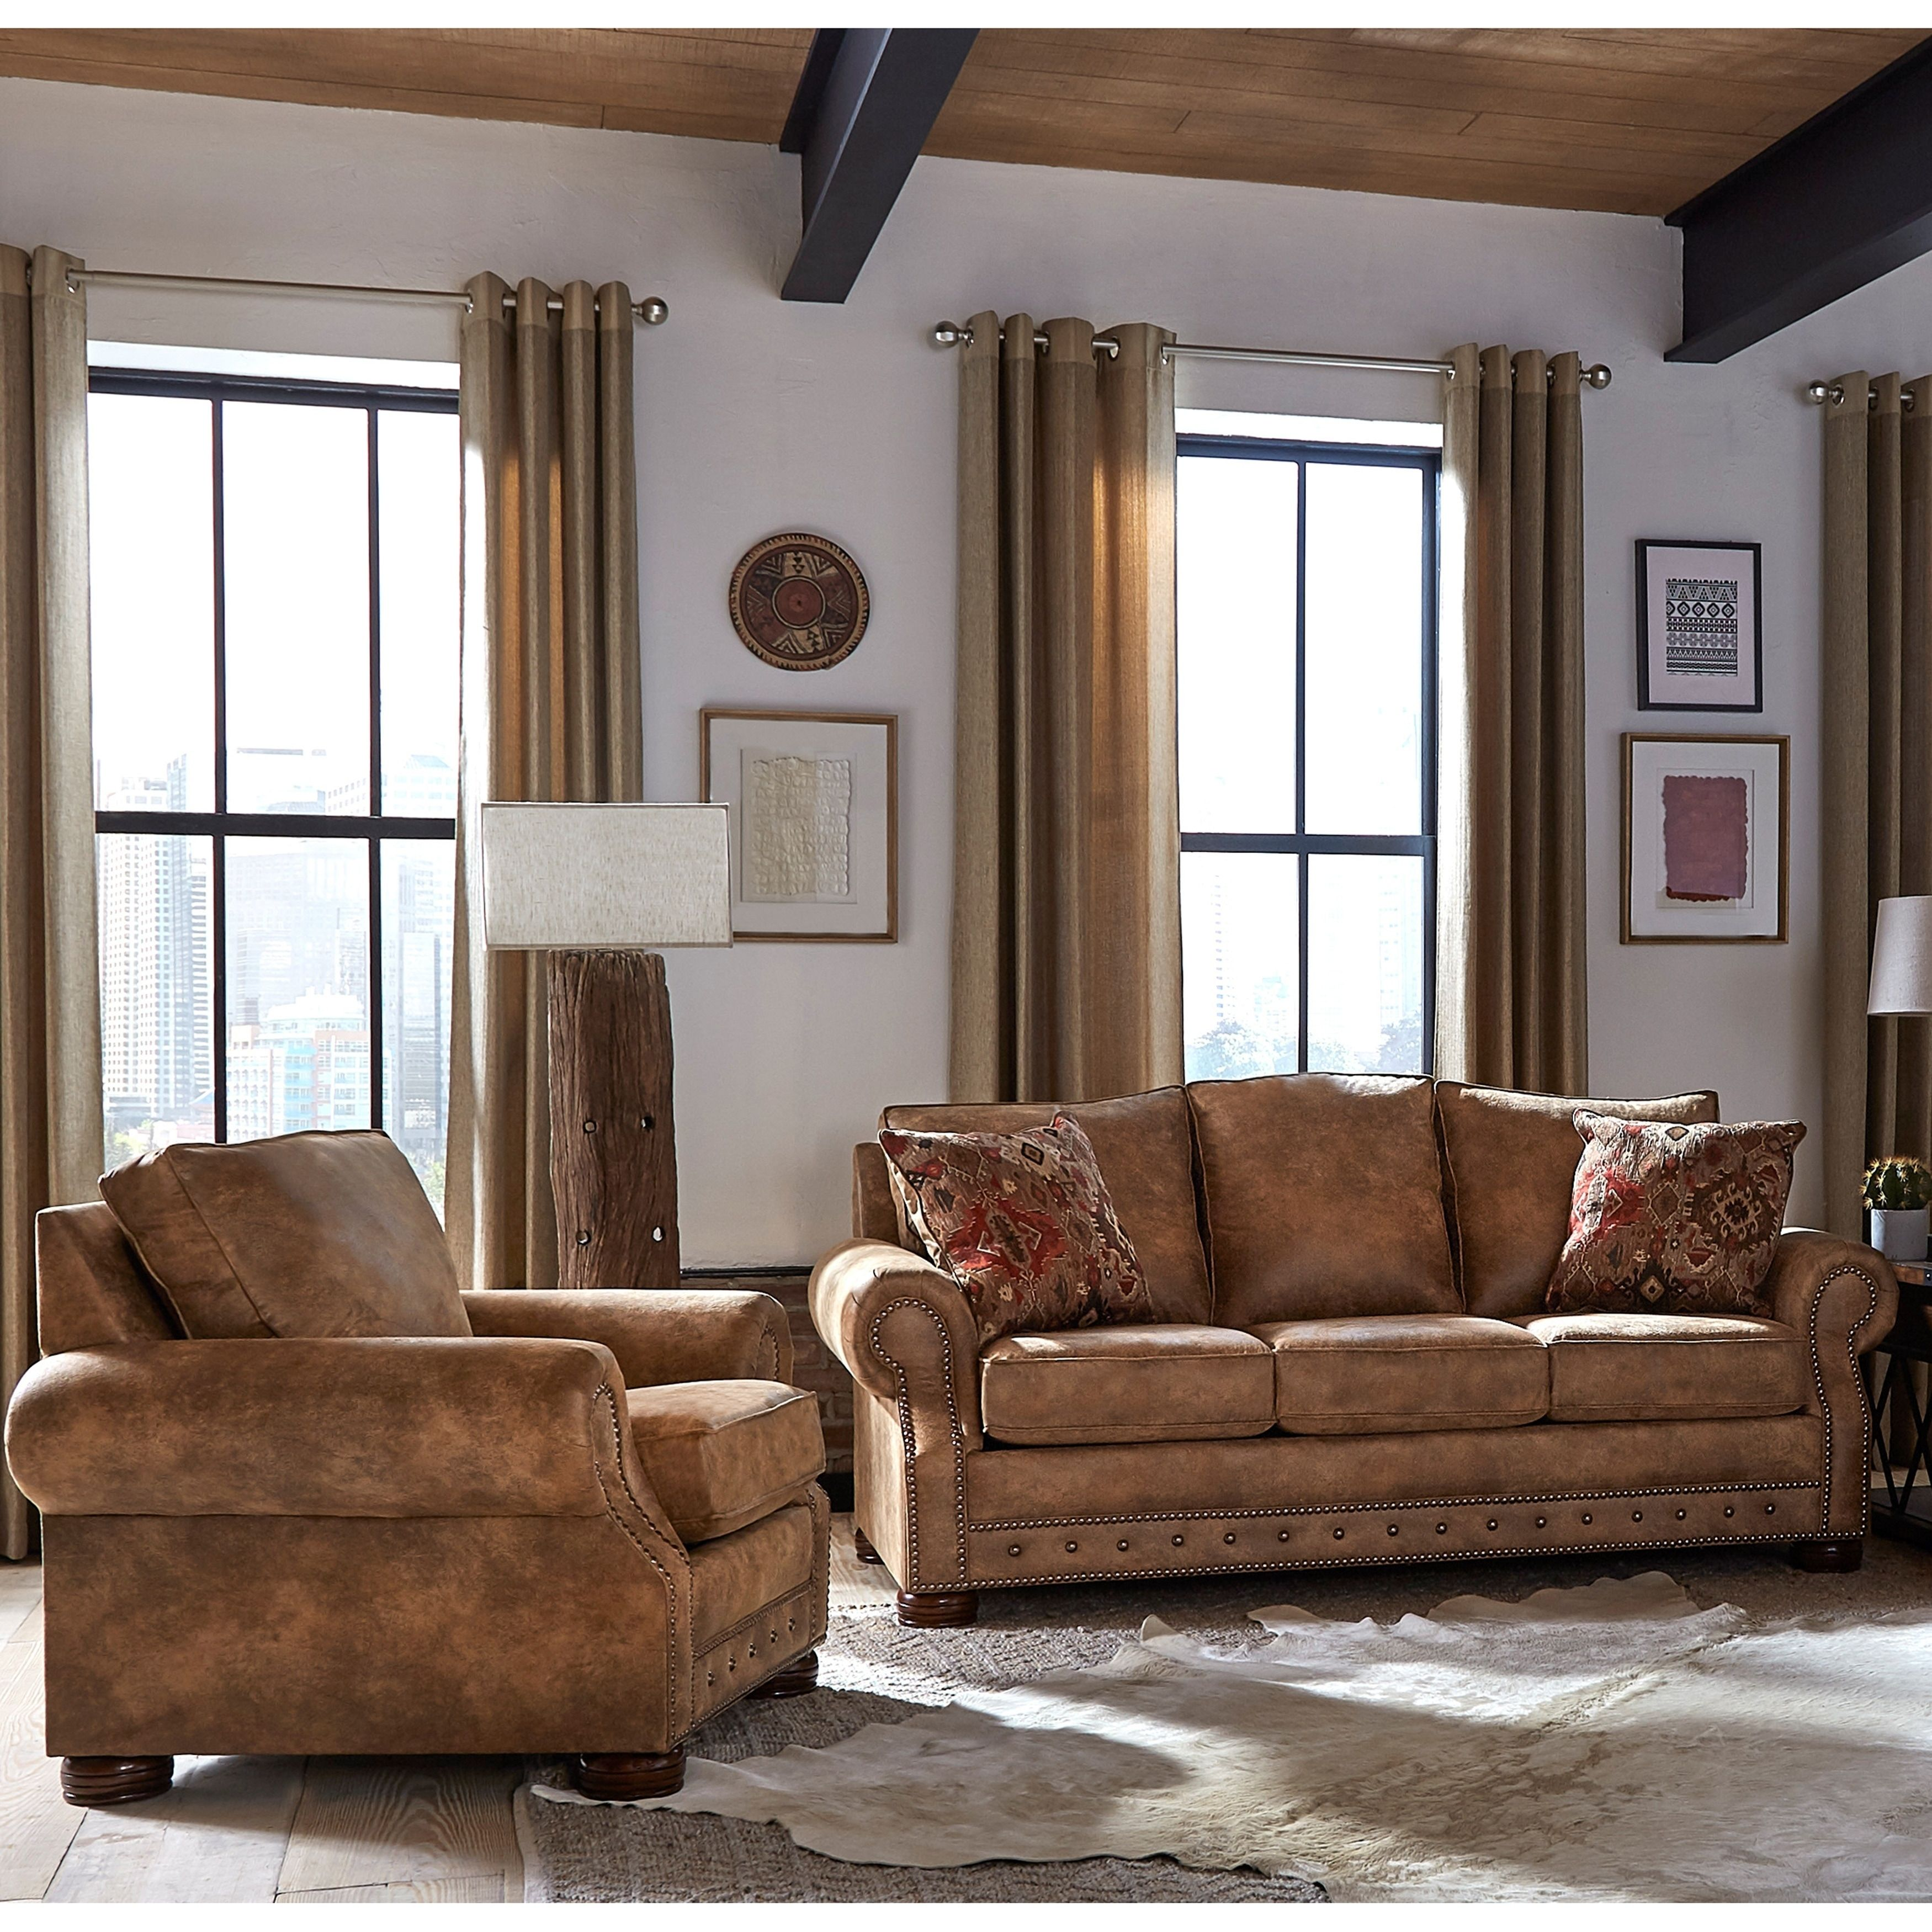 Made in USA Rancho Rustic Brown Buckskin Fabric Sofa Bed and Chair